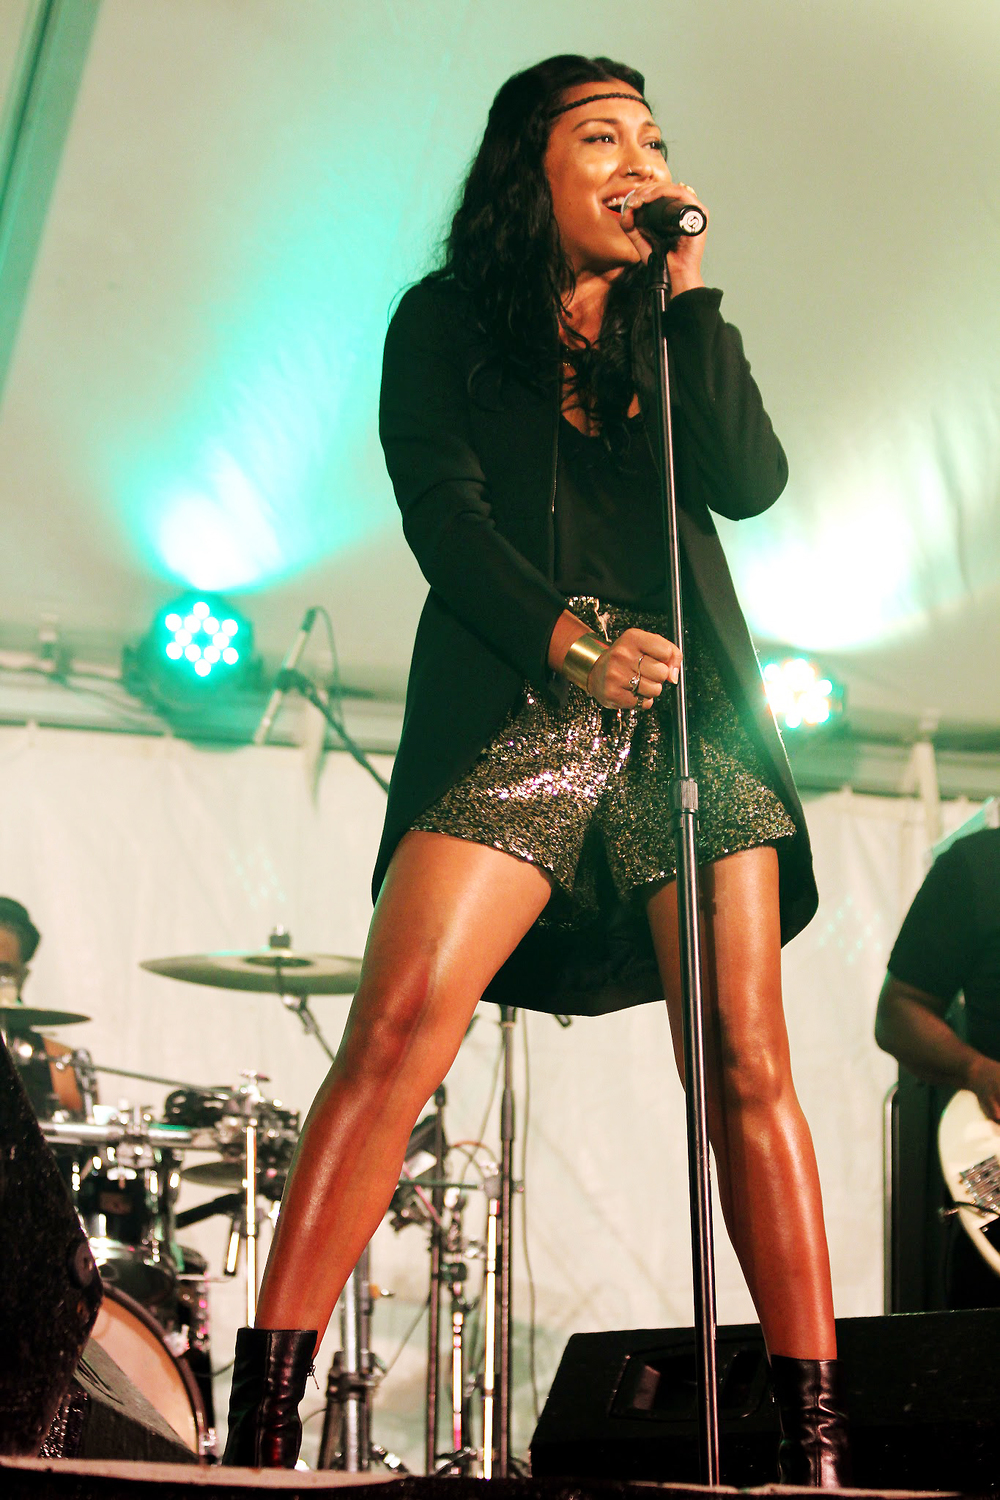 Grammy-Award winning singer Melanie Fiona performs at the 2013 Naniki Caribbean Jazz Safari held at Ilaro Court on January 20th in Barbados.